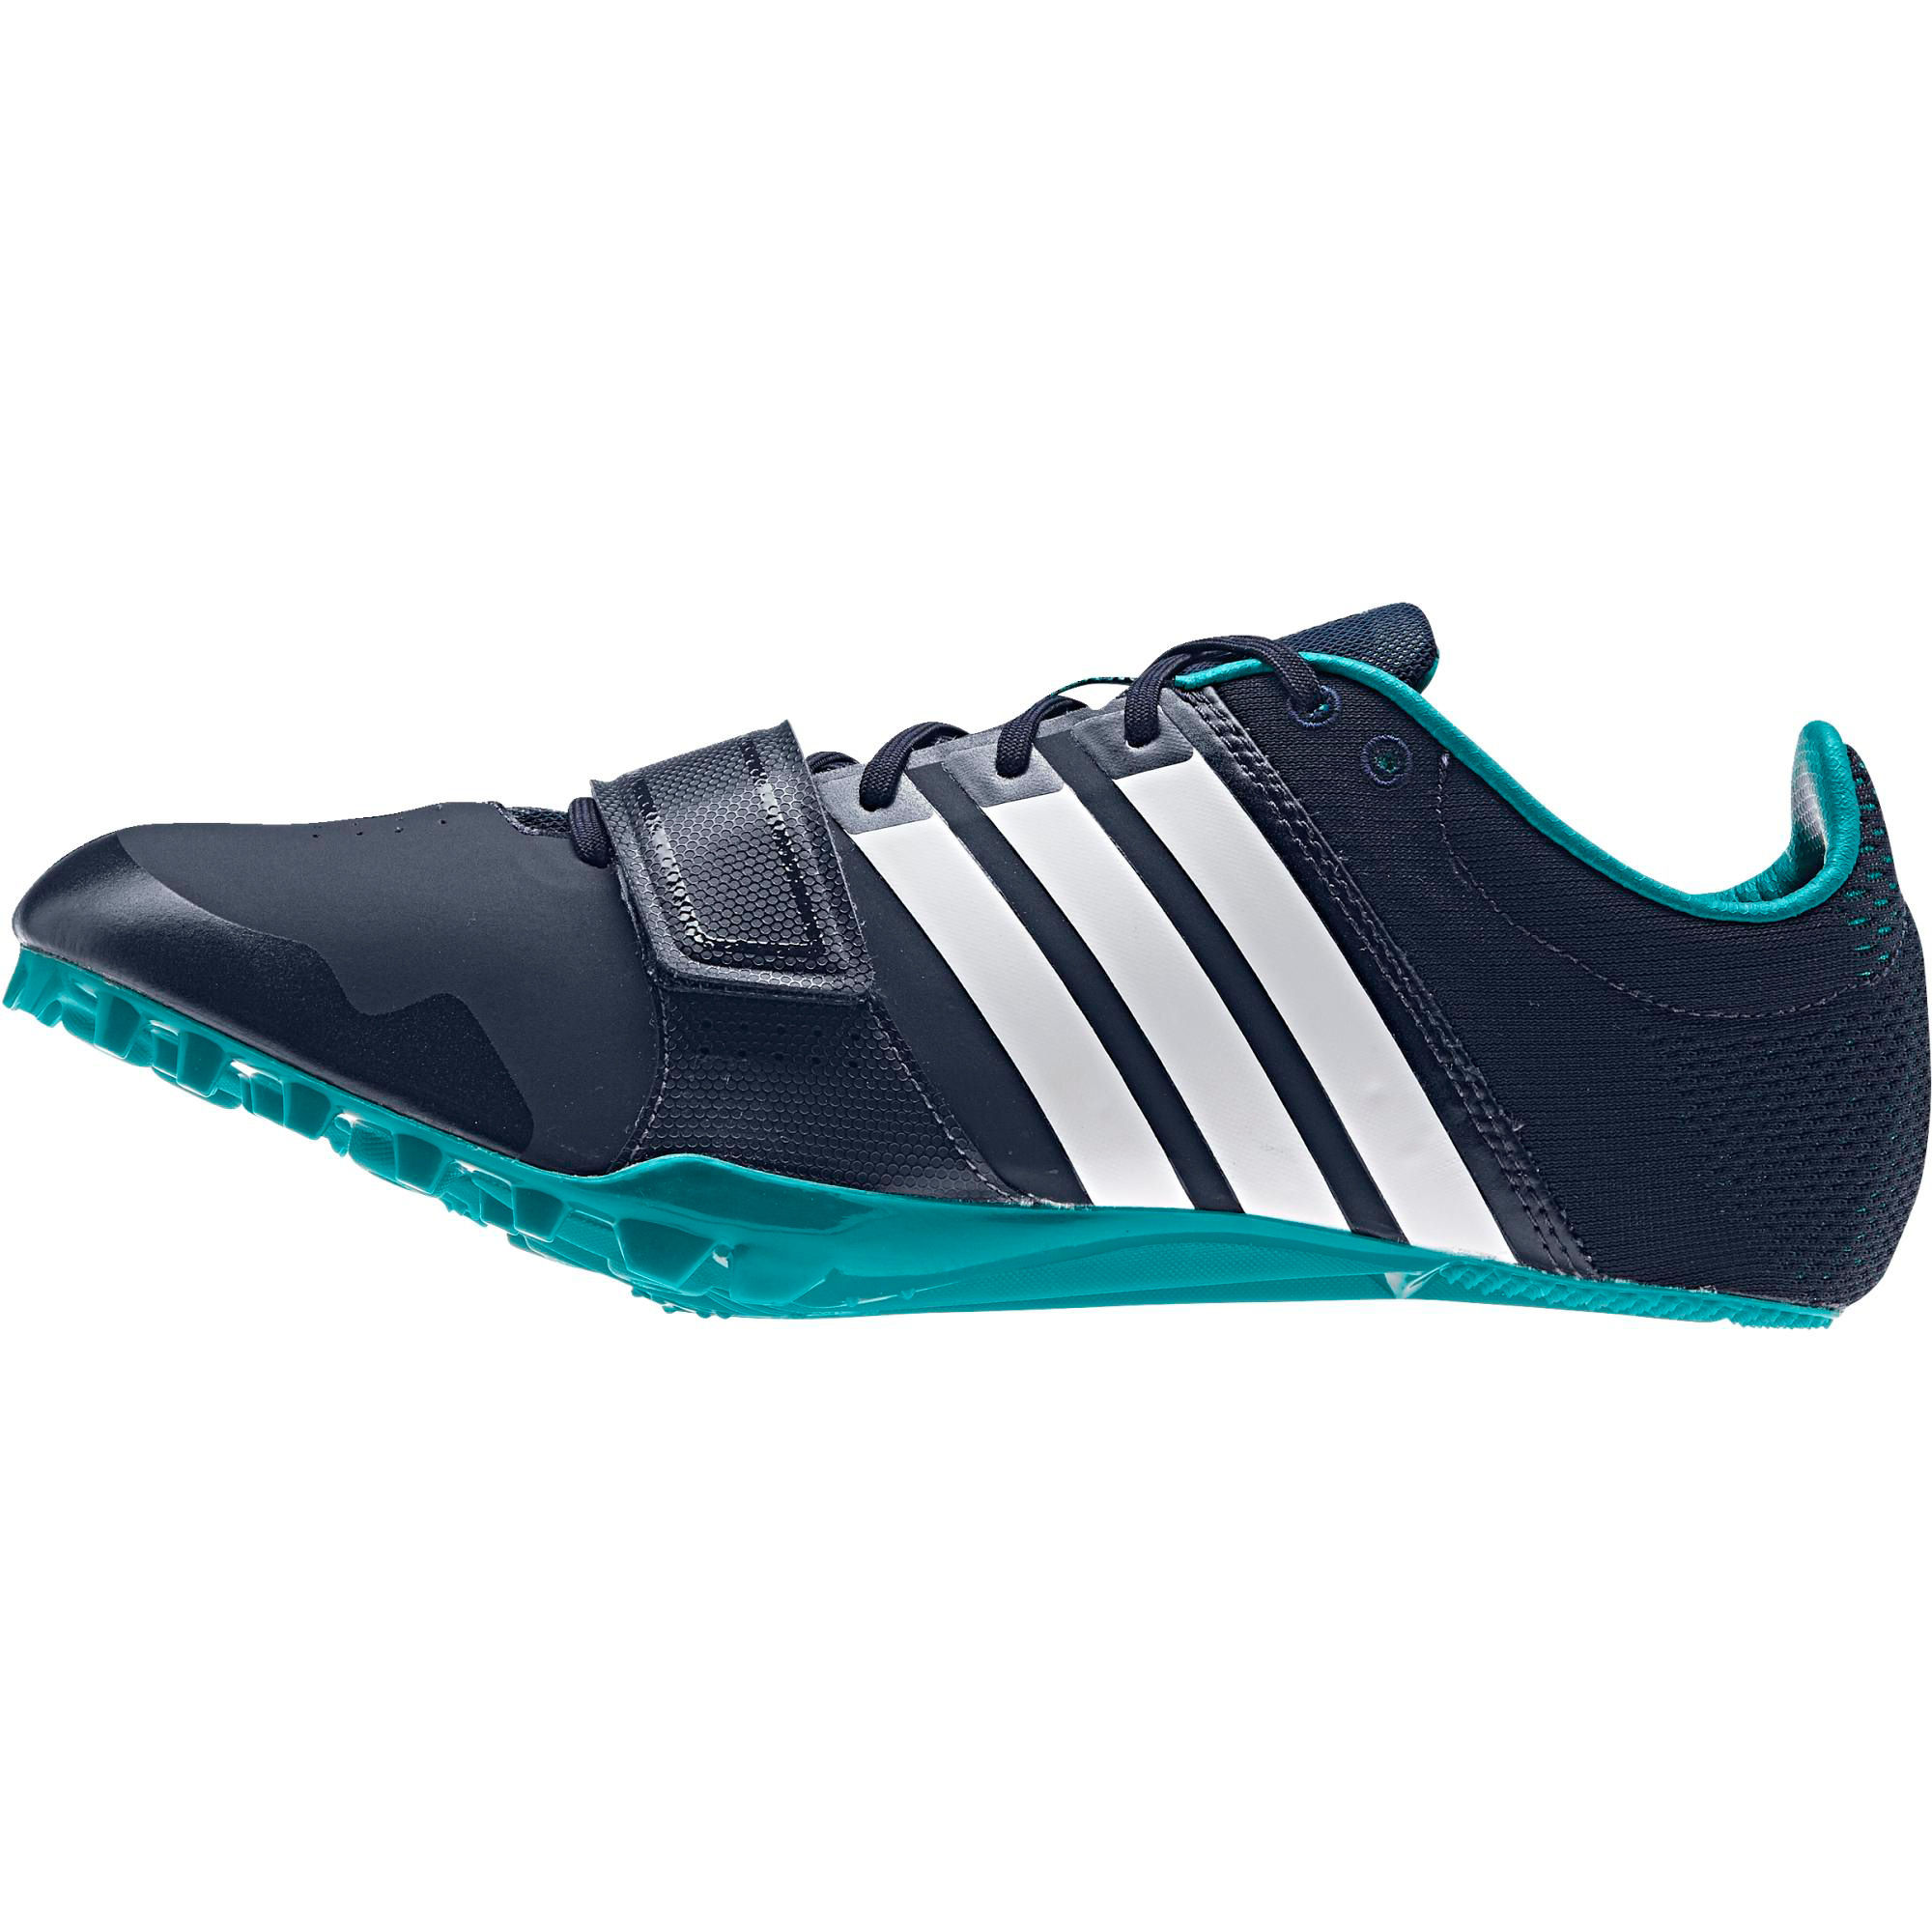 Adidas Track Shoes For Sprinters